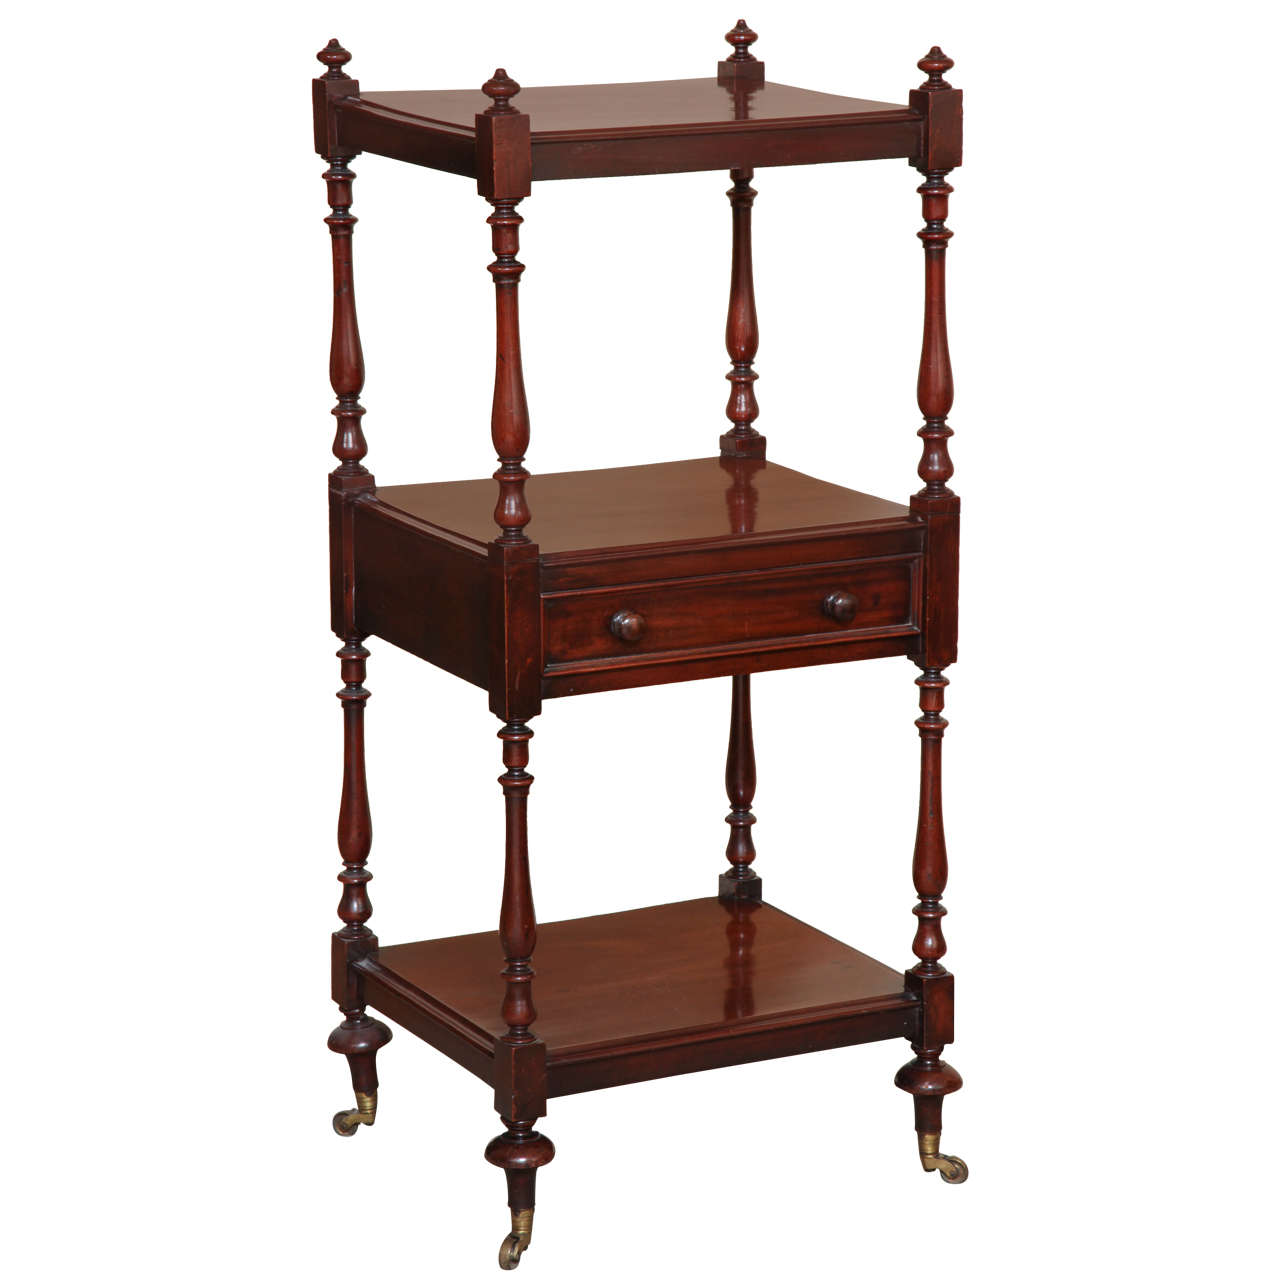 regency mahogany three tier etagere for sale at 1stdibs. Black Bedroom Furniture Sets. Home Design Ideas